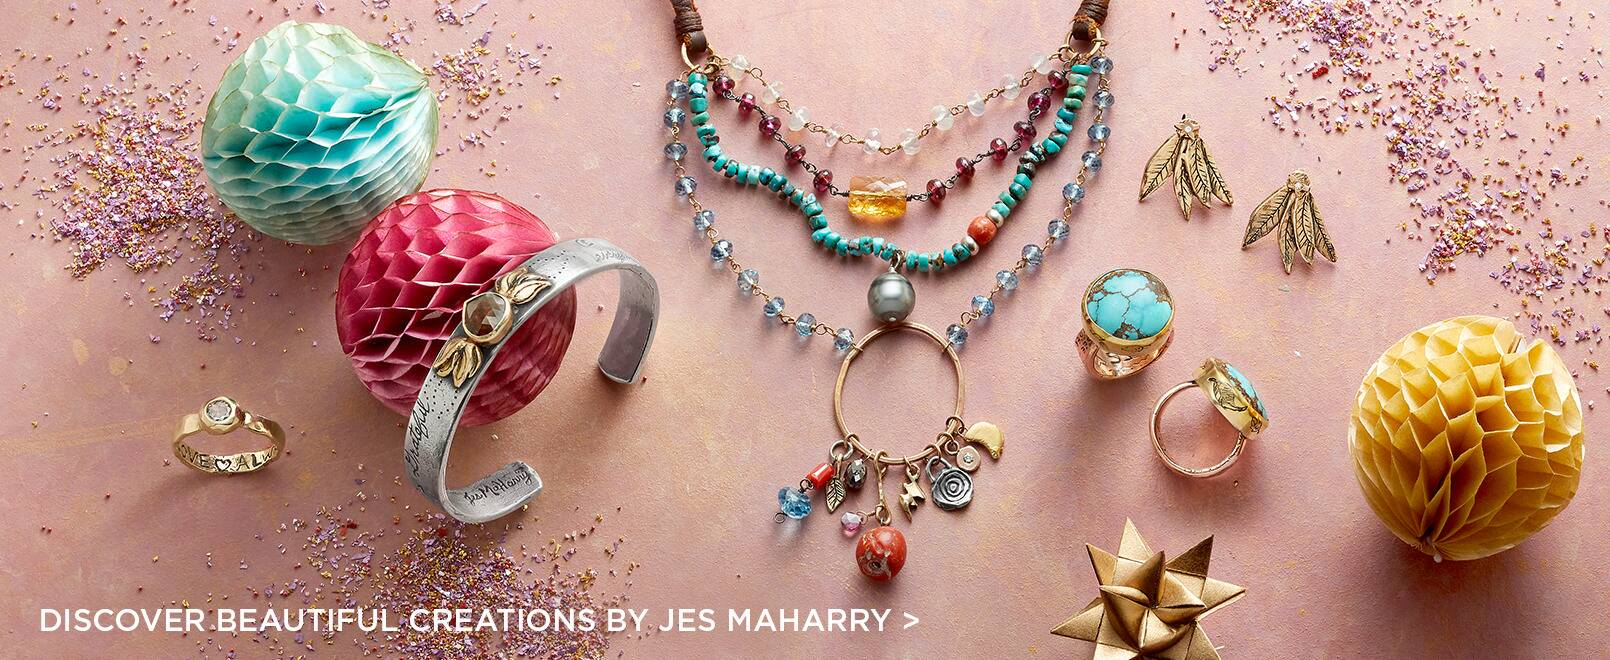 Shop Jes MaHarry Jewelry